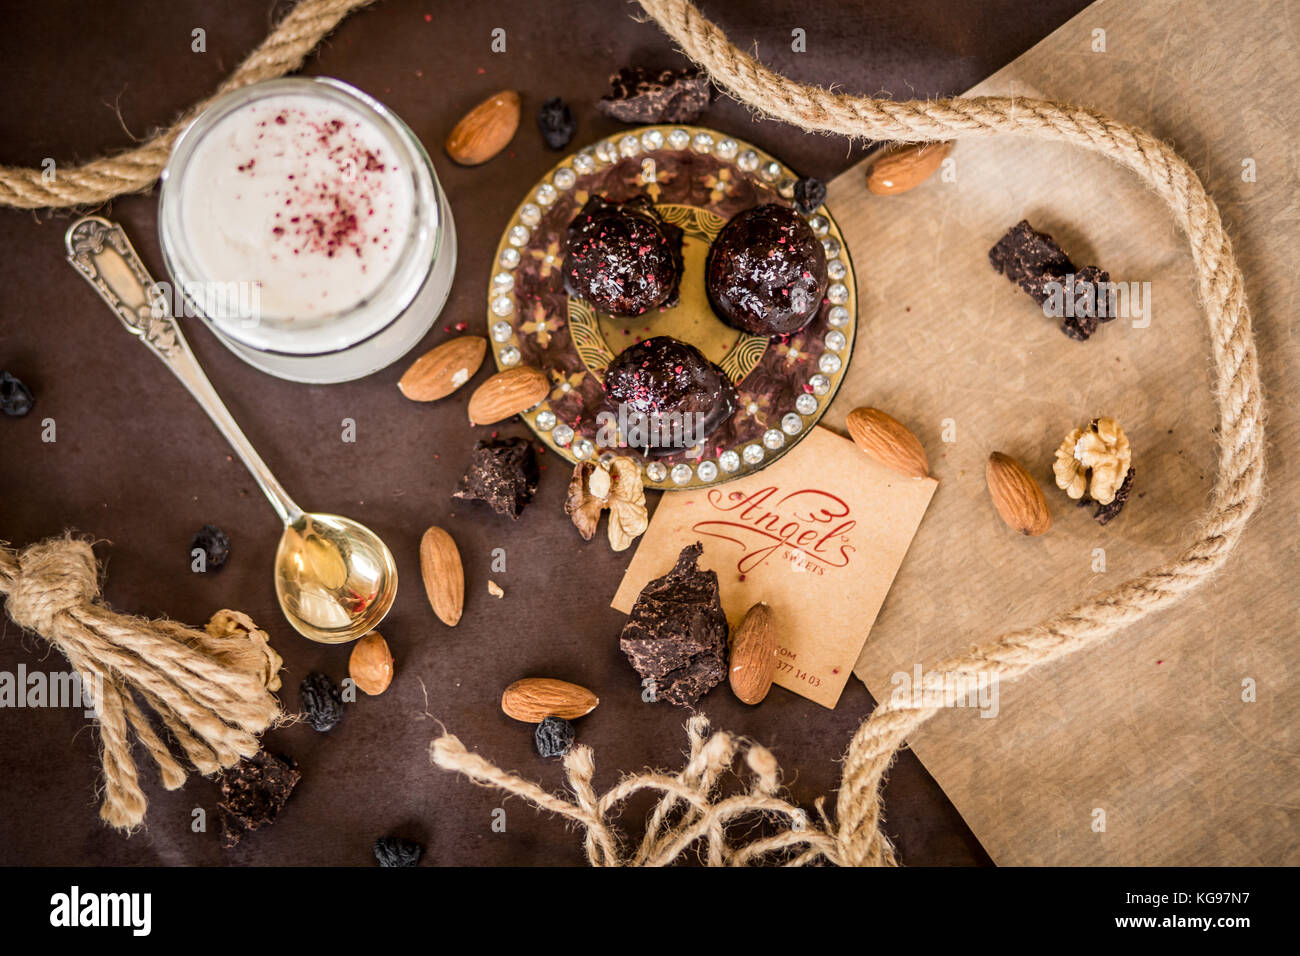 dessert composition coconut cream with strawberries and nuts on a brown background with a decorative lace and chocolate - Stock Image